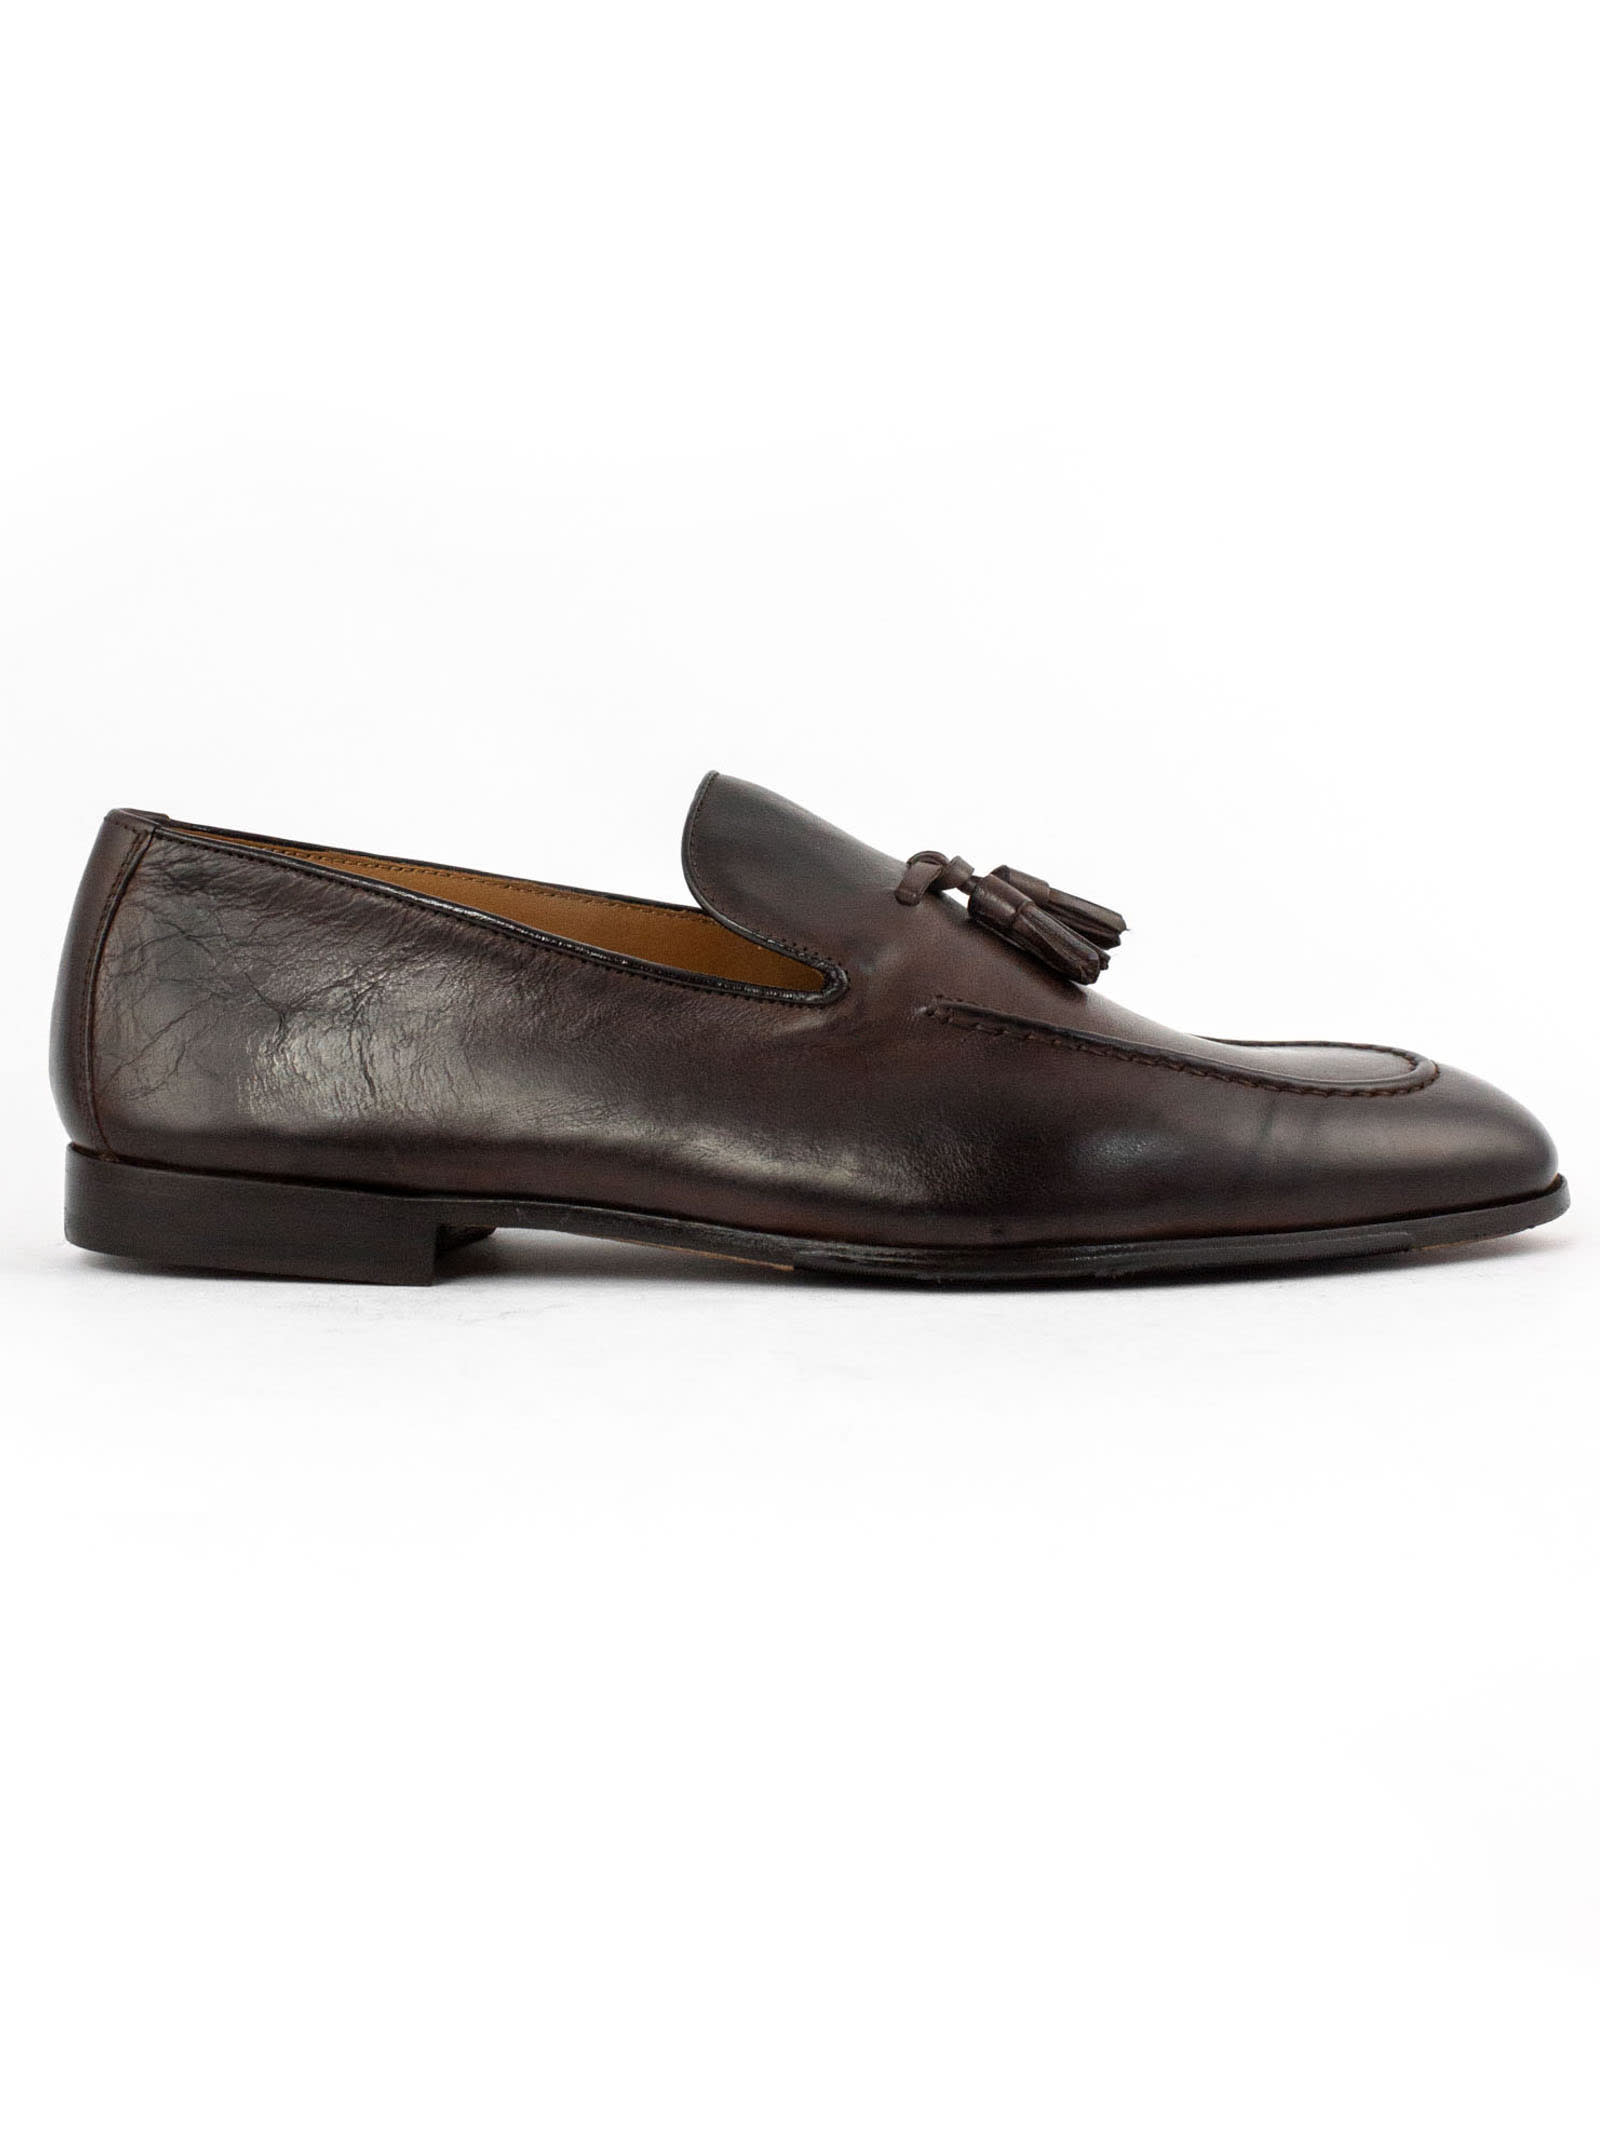 Doucals Brown Smooth Leather Loafer